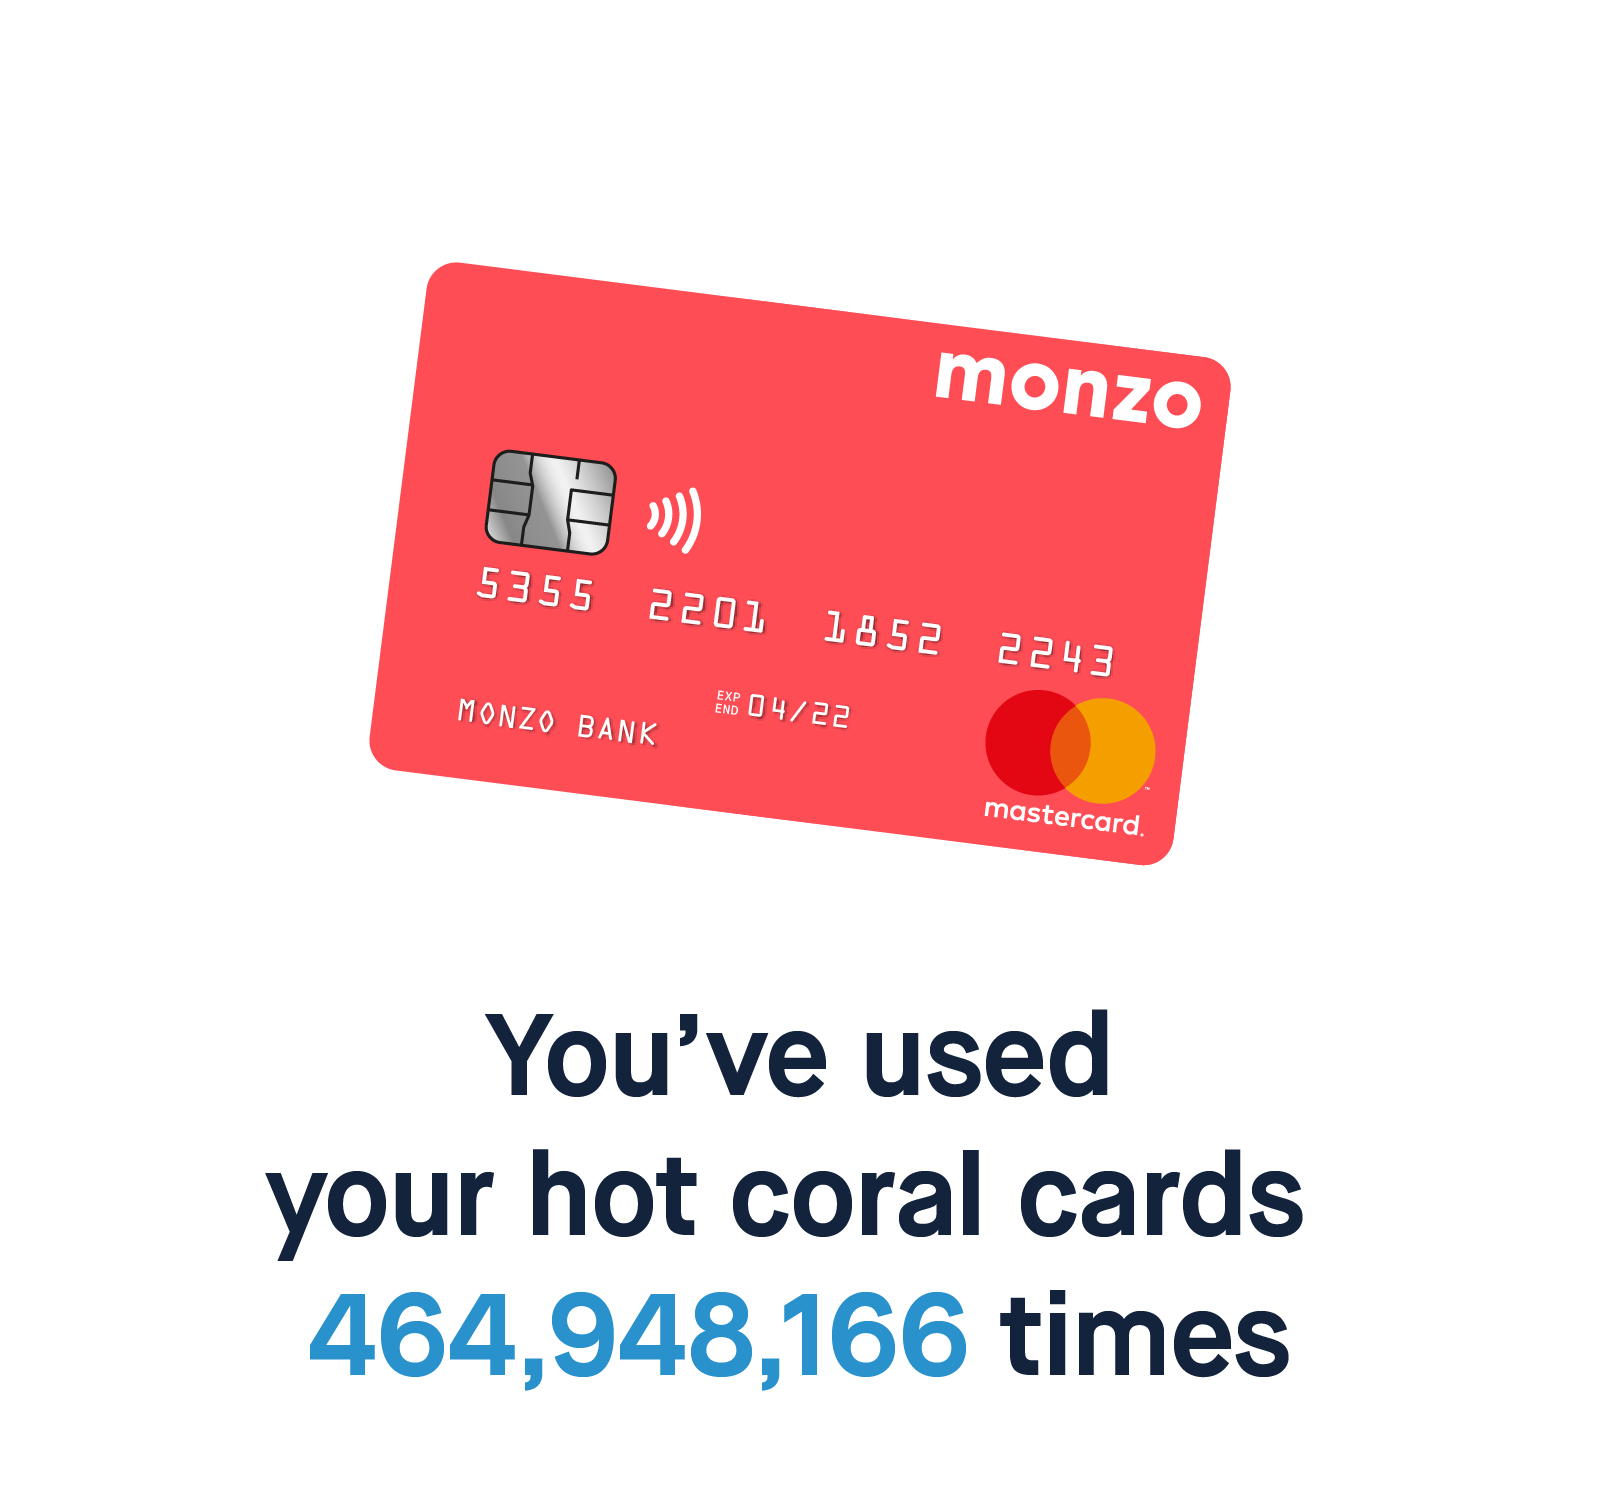 You've used your hot coral cards 464,948,166 times